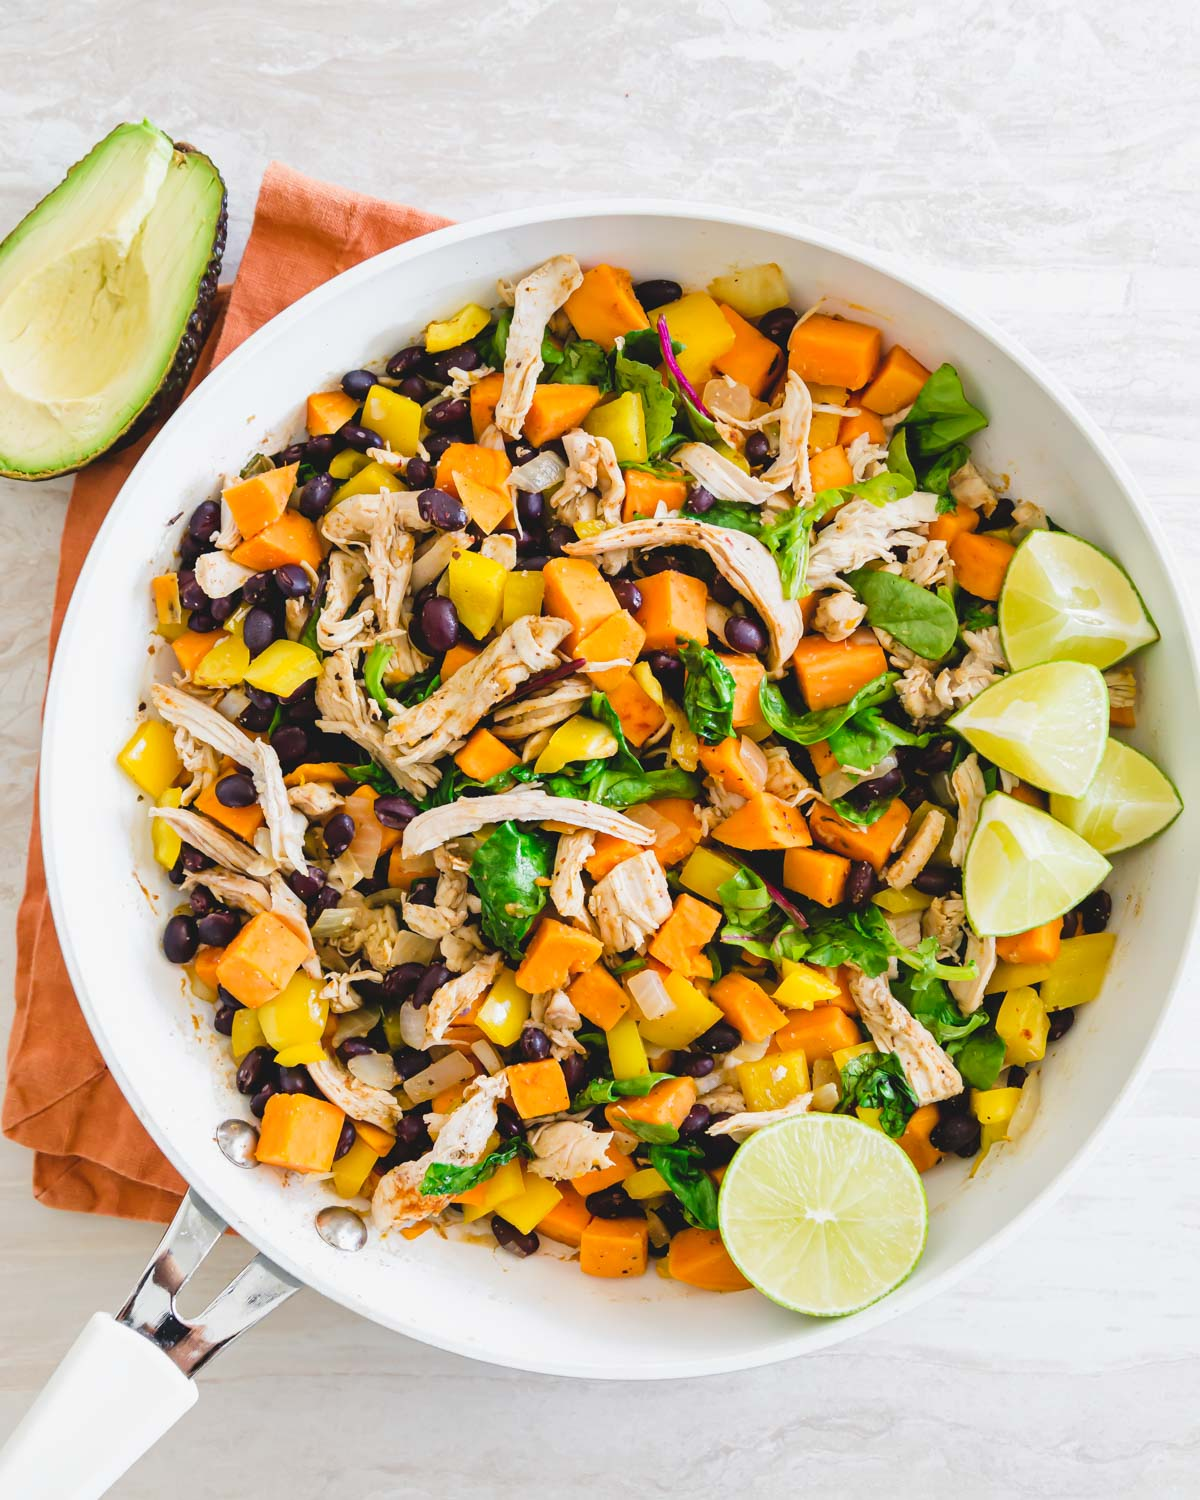 A one skillet healthy meal of leftover turkey, sweet potatoes, black beans with other Mexican style ingredients.